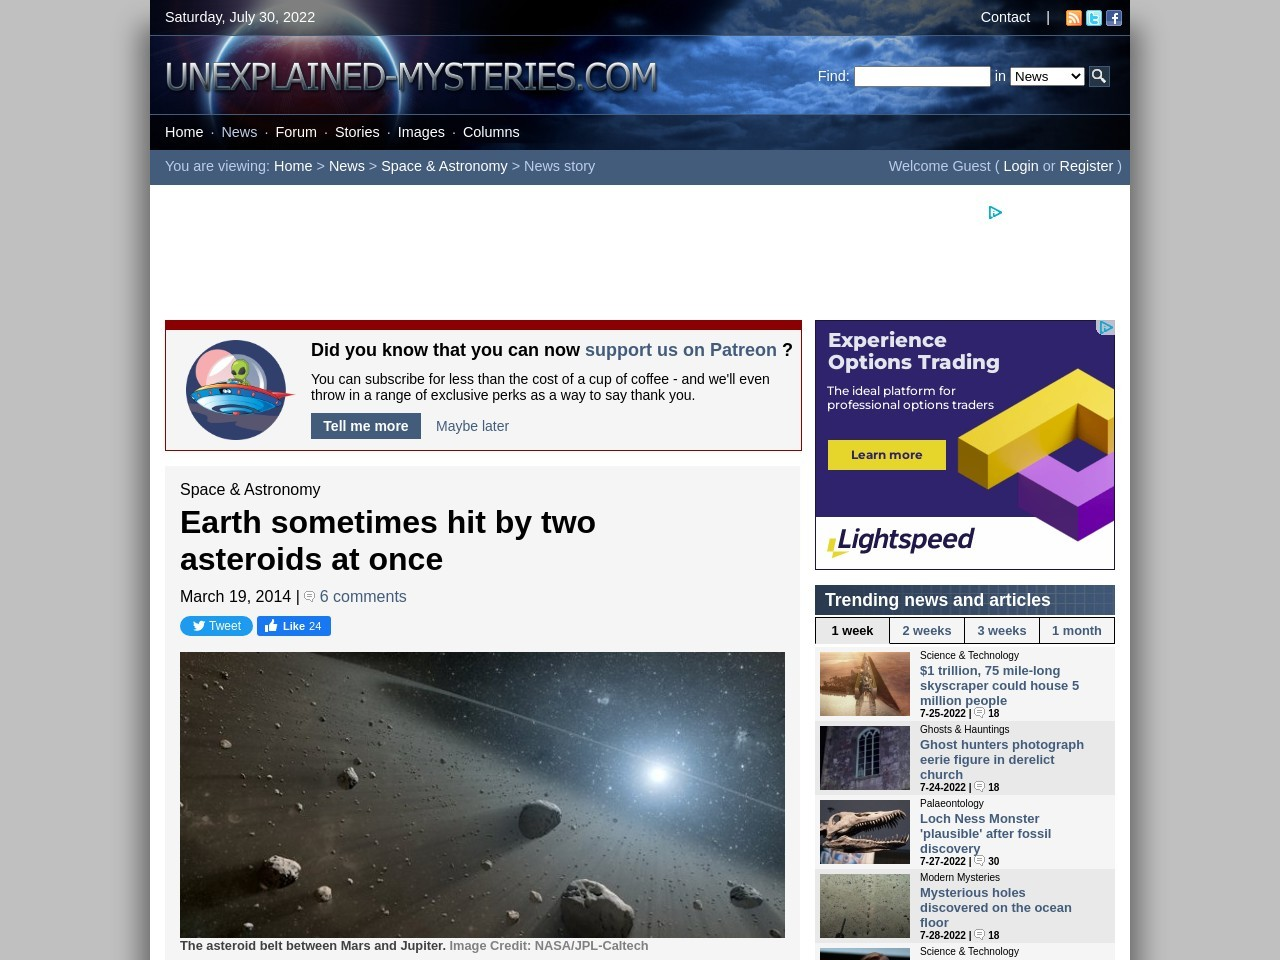 Earth sometimes hit by two asteroids at once